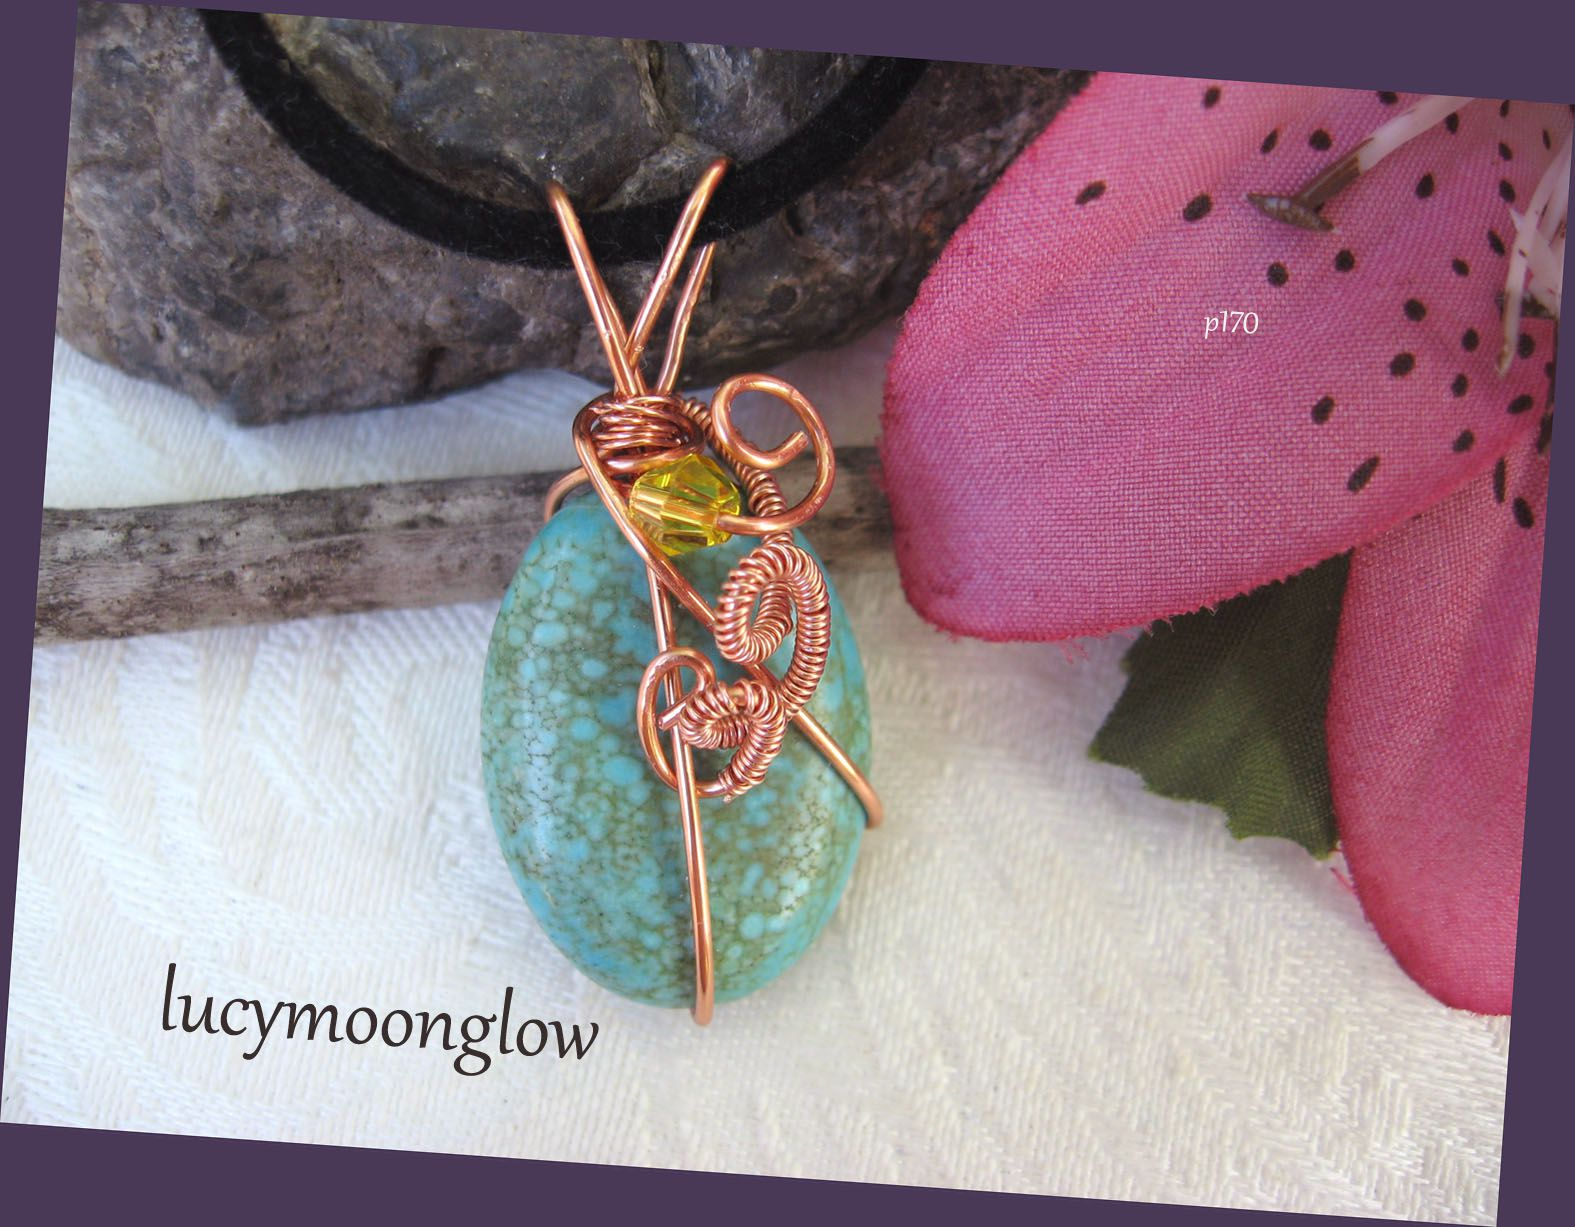 copper wire green pendant gift wrapped wirewrap blue jewelry turquoise handmade necklace gemstone woven wirewoven wireweave lucymoonglow handcrafted